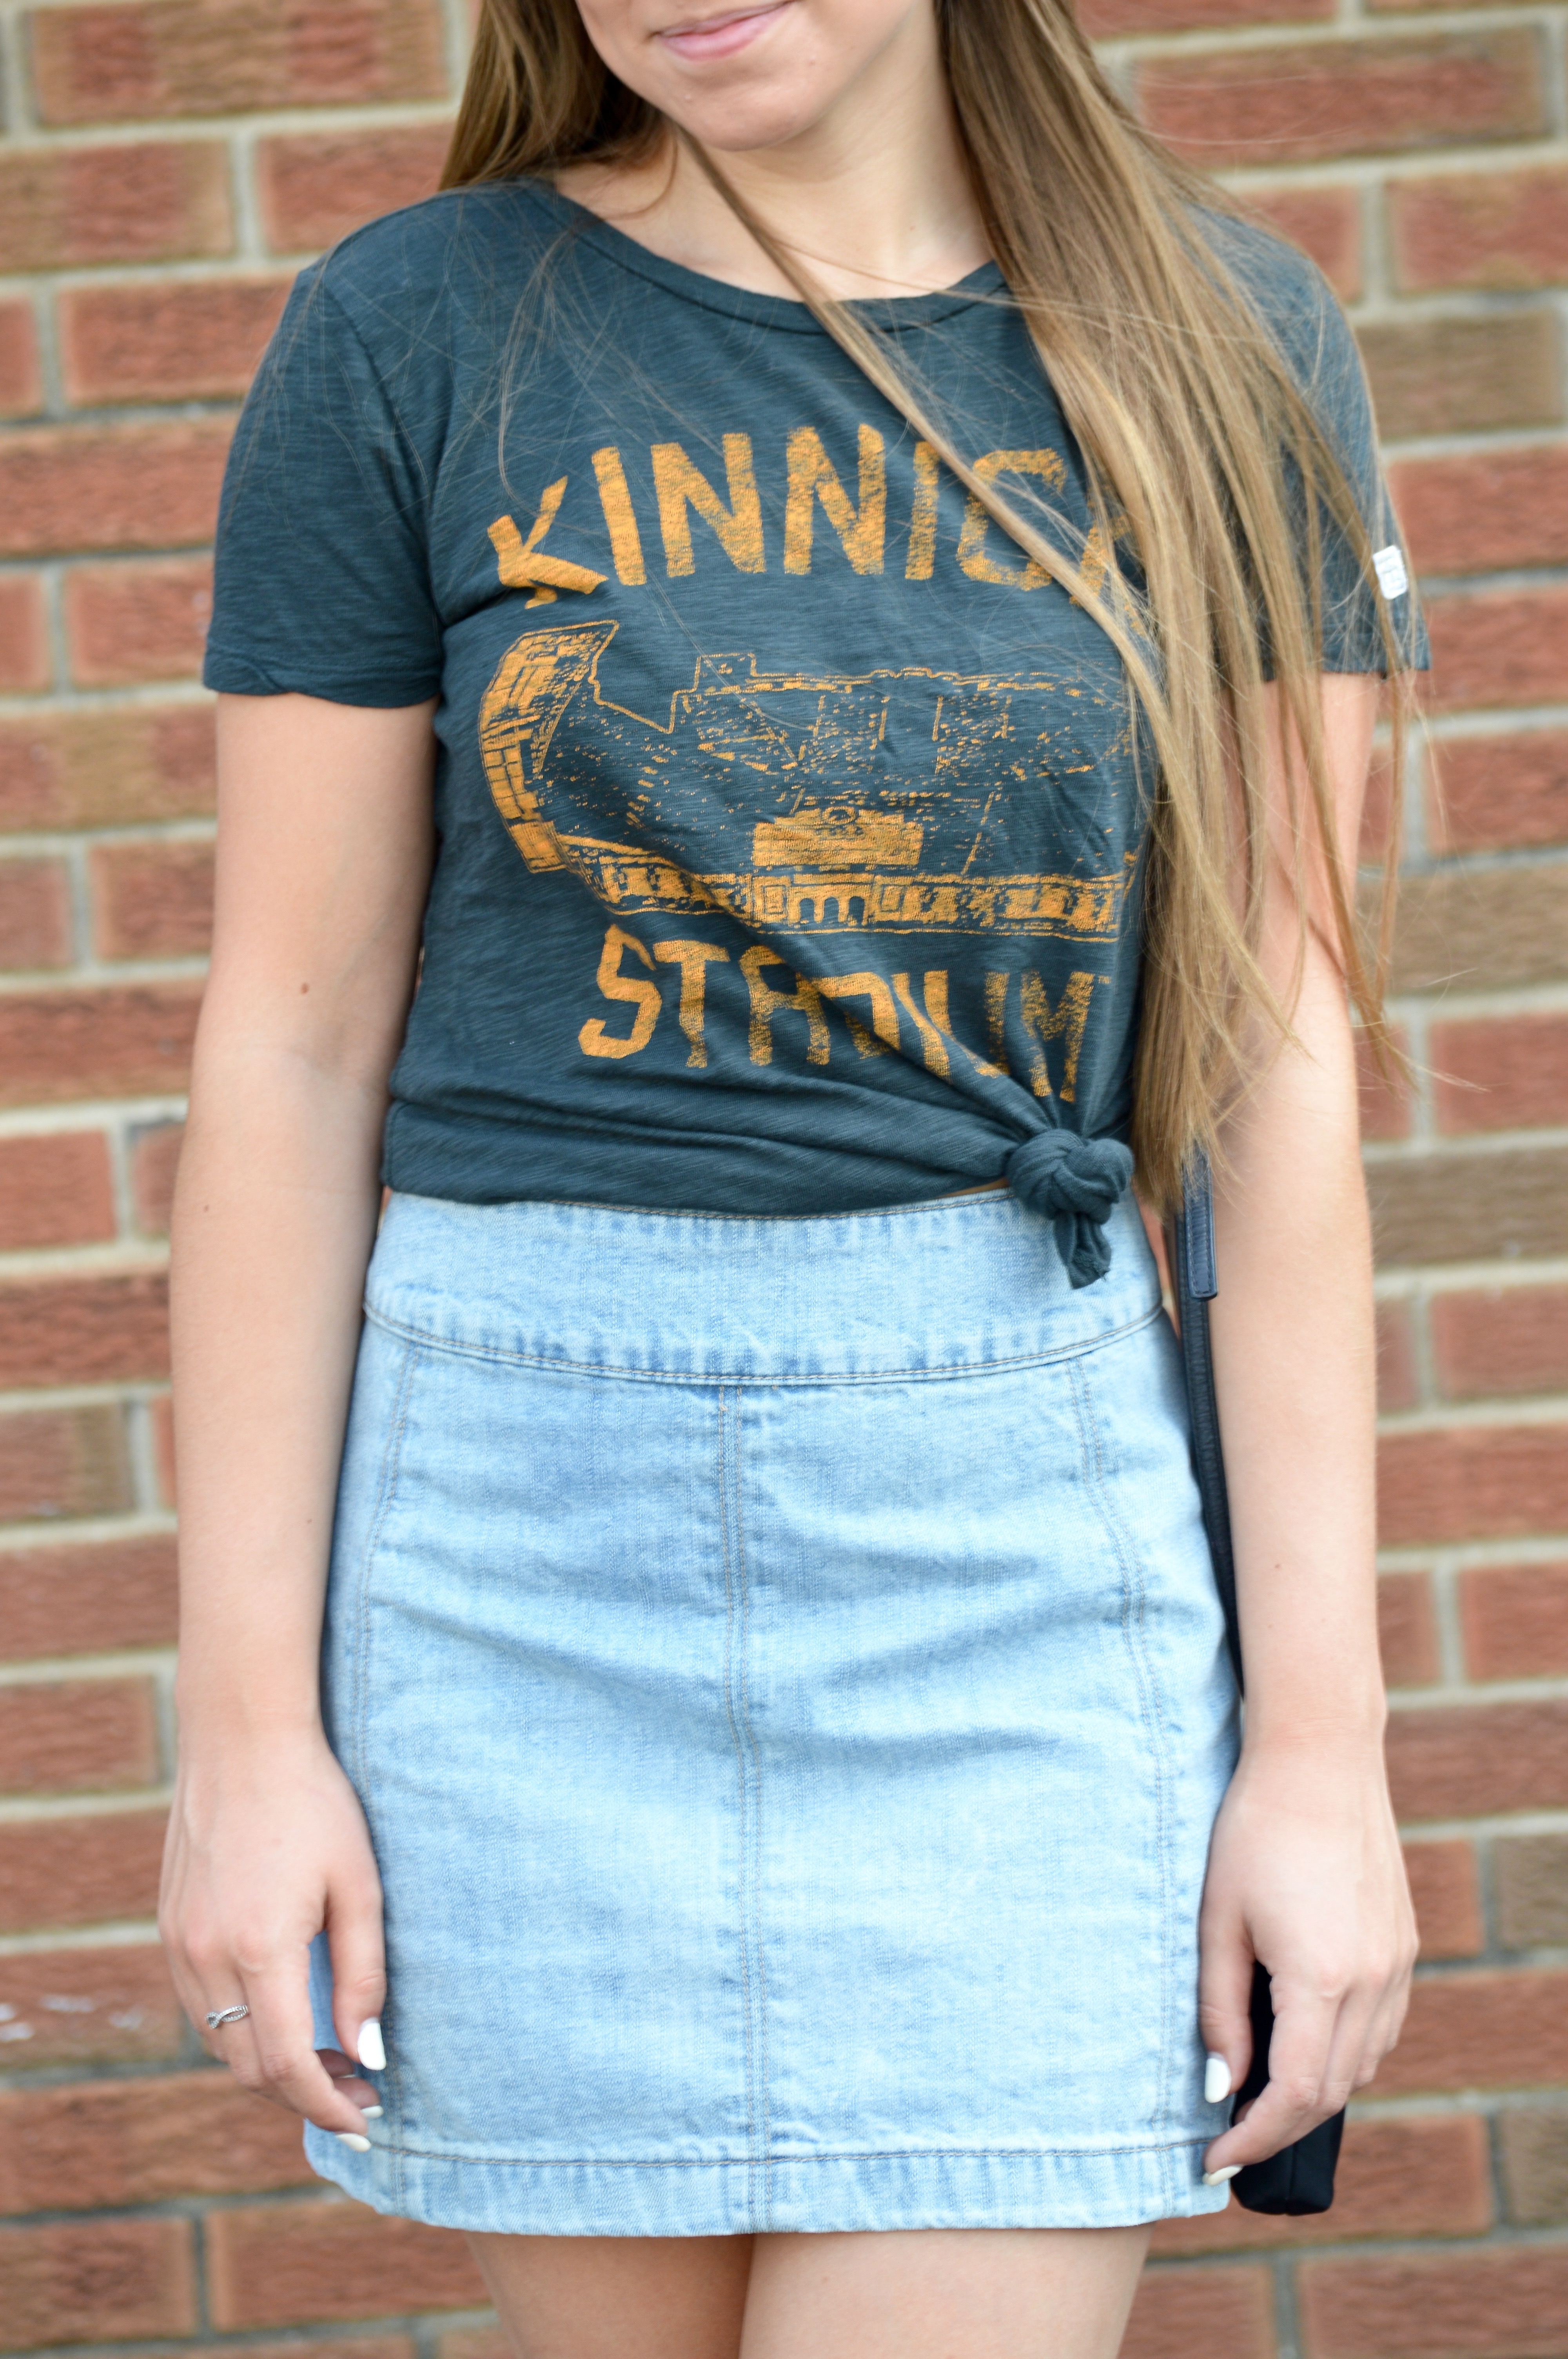 How to Style a T Shirt with a Denim Skirt